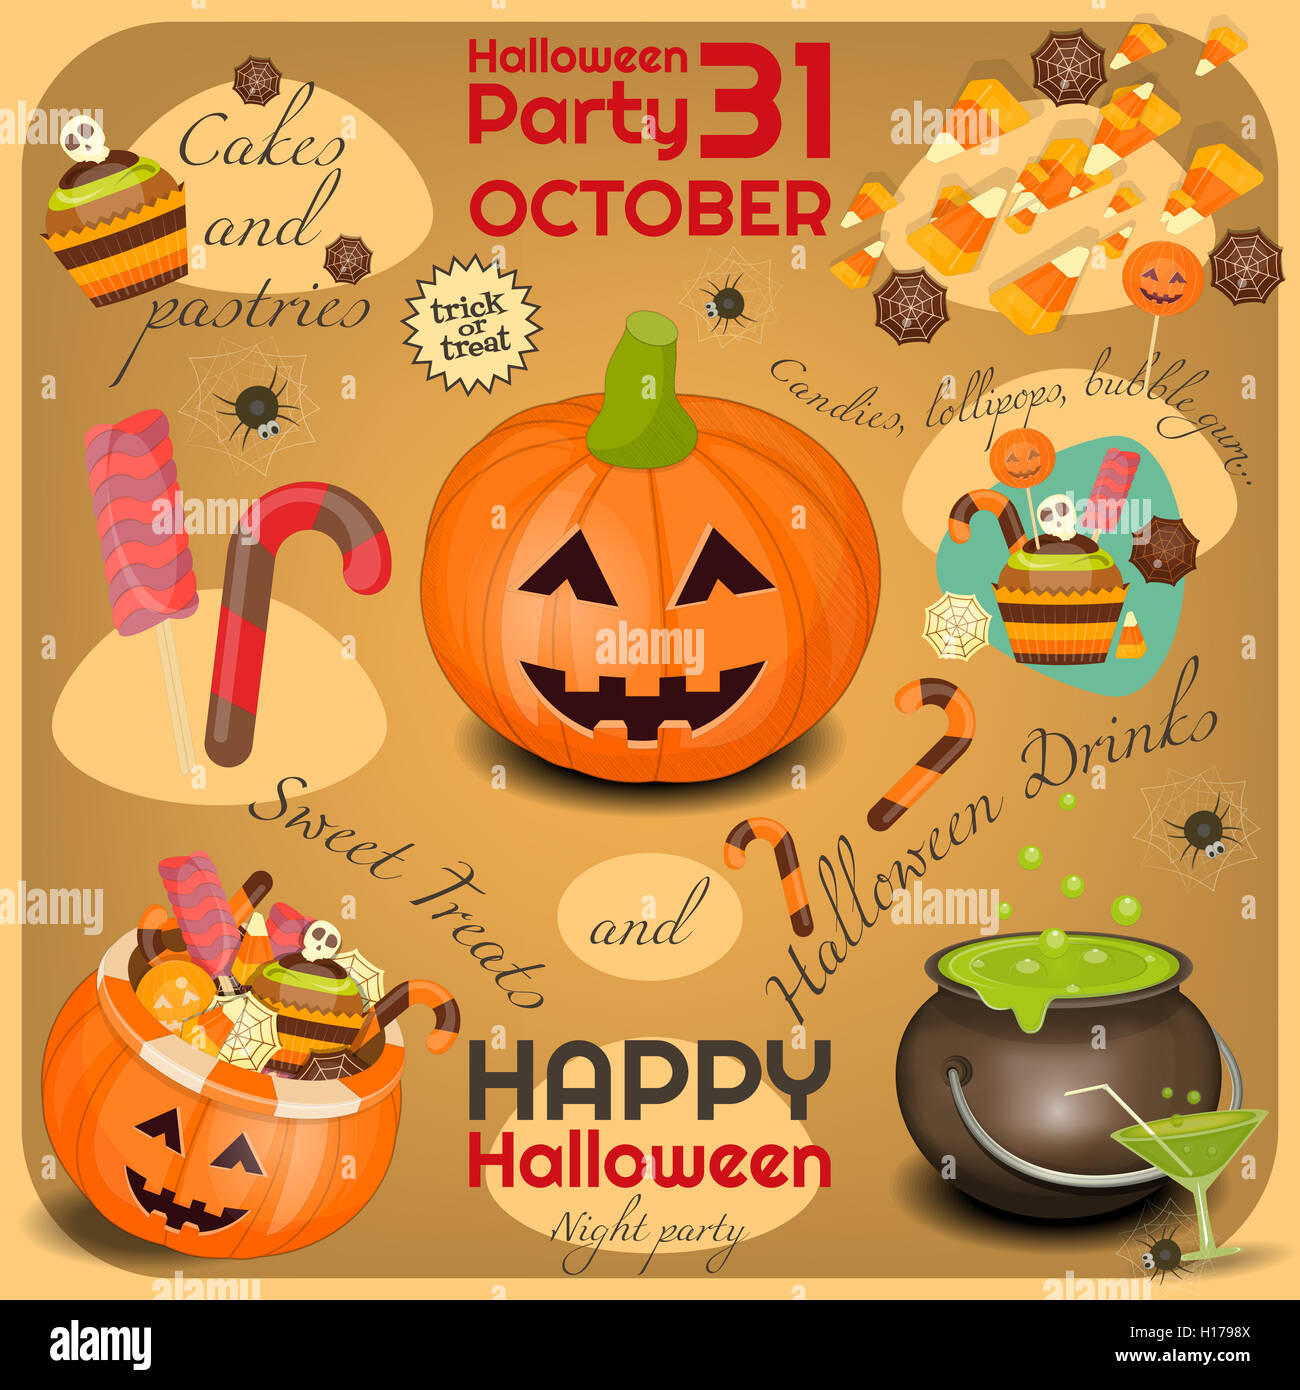 Halloween Poster - Symbols and Signs of October Halloween. Sweet Treats and Jack-o-lantern. Invitation Card for Stock Photo